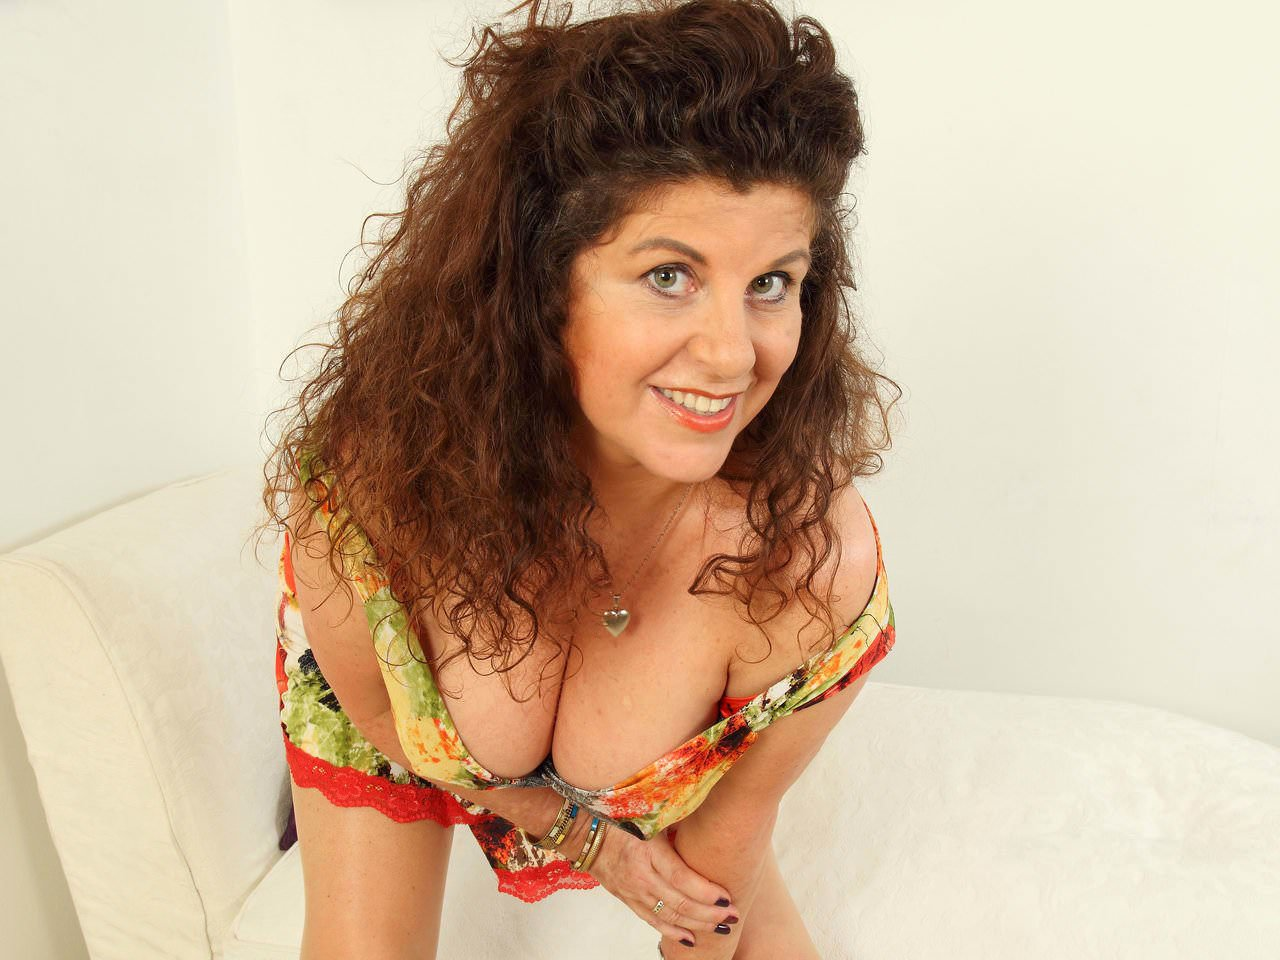 Here her gilly into milf her pushes english fanny knickers speaking